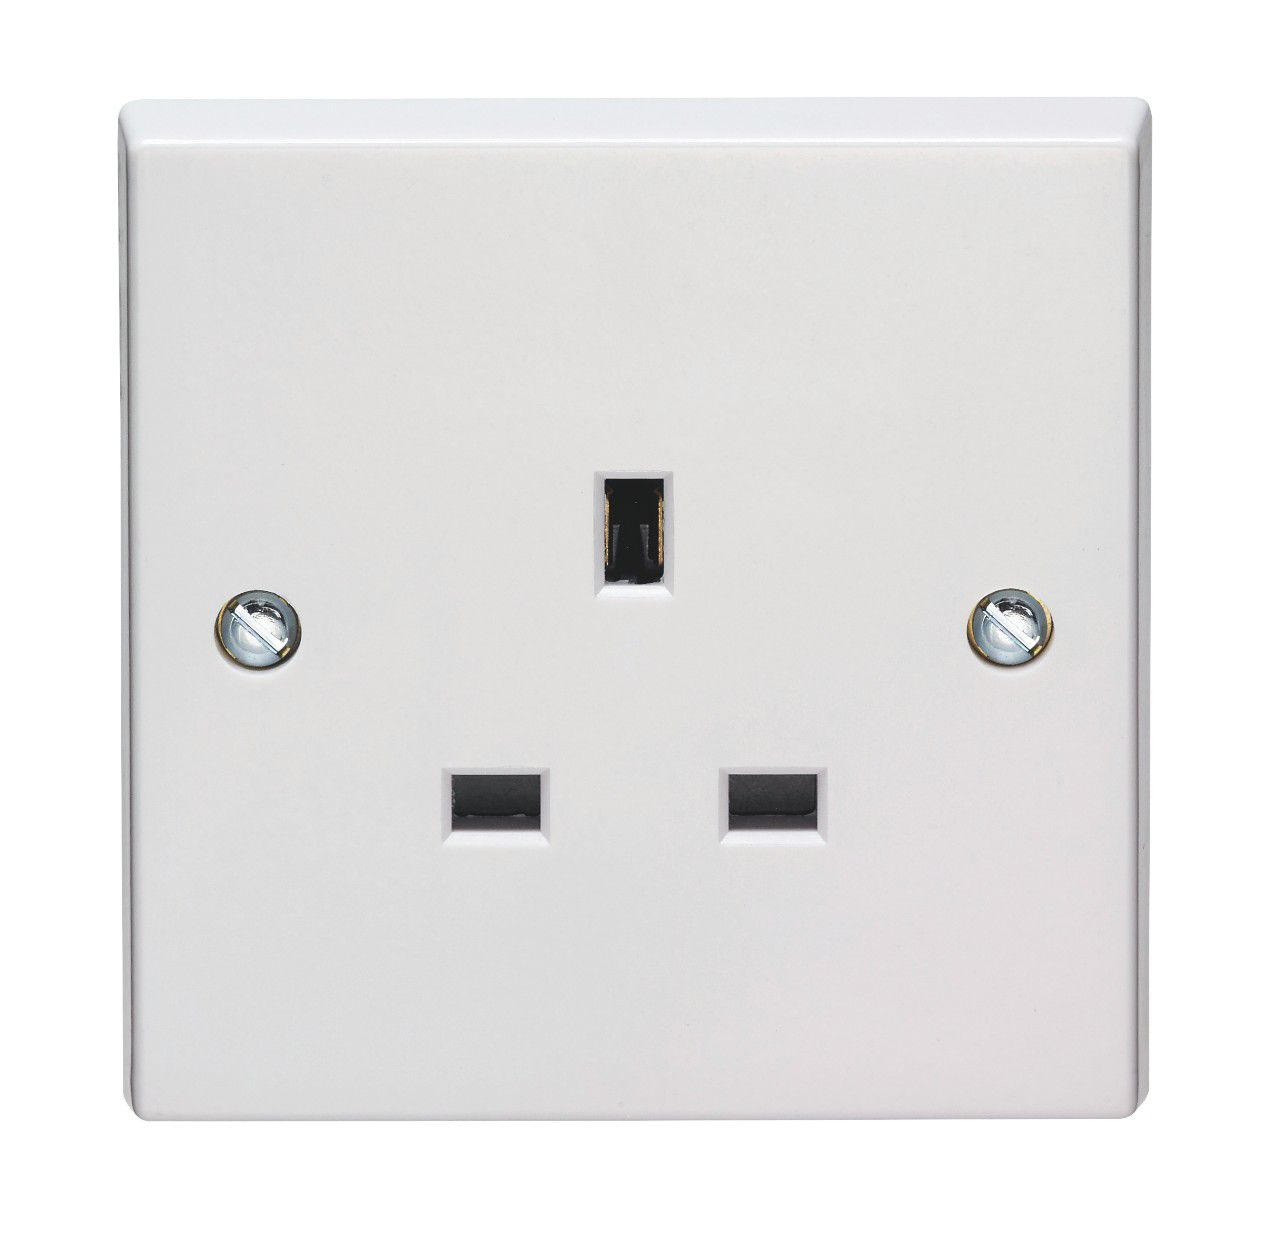 Electrical Supplies Online Unit Suppliers Accessories Plug Outlet Wiring Switches Sockets